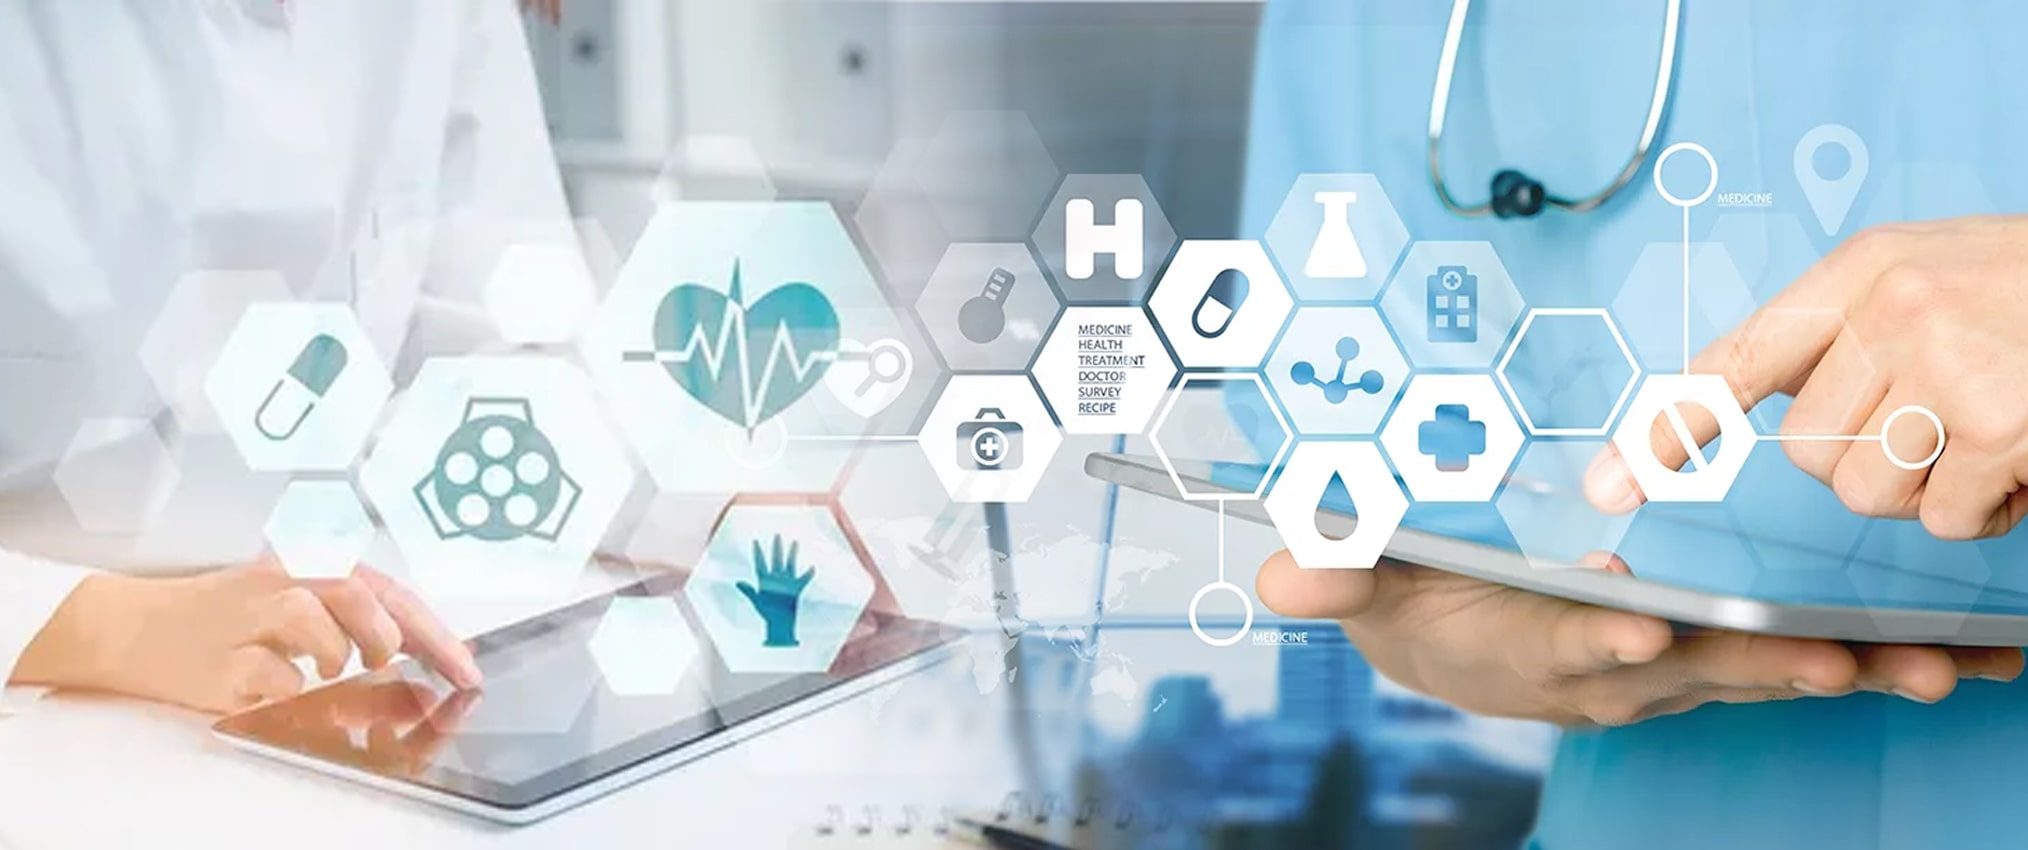 Advantages-Of-Outsourcing-Healthcare-Process-To-BPO